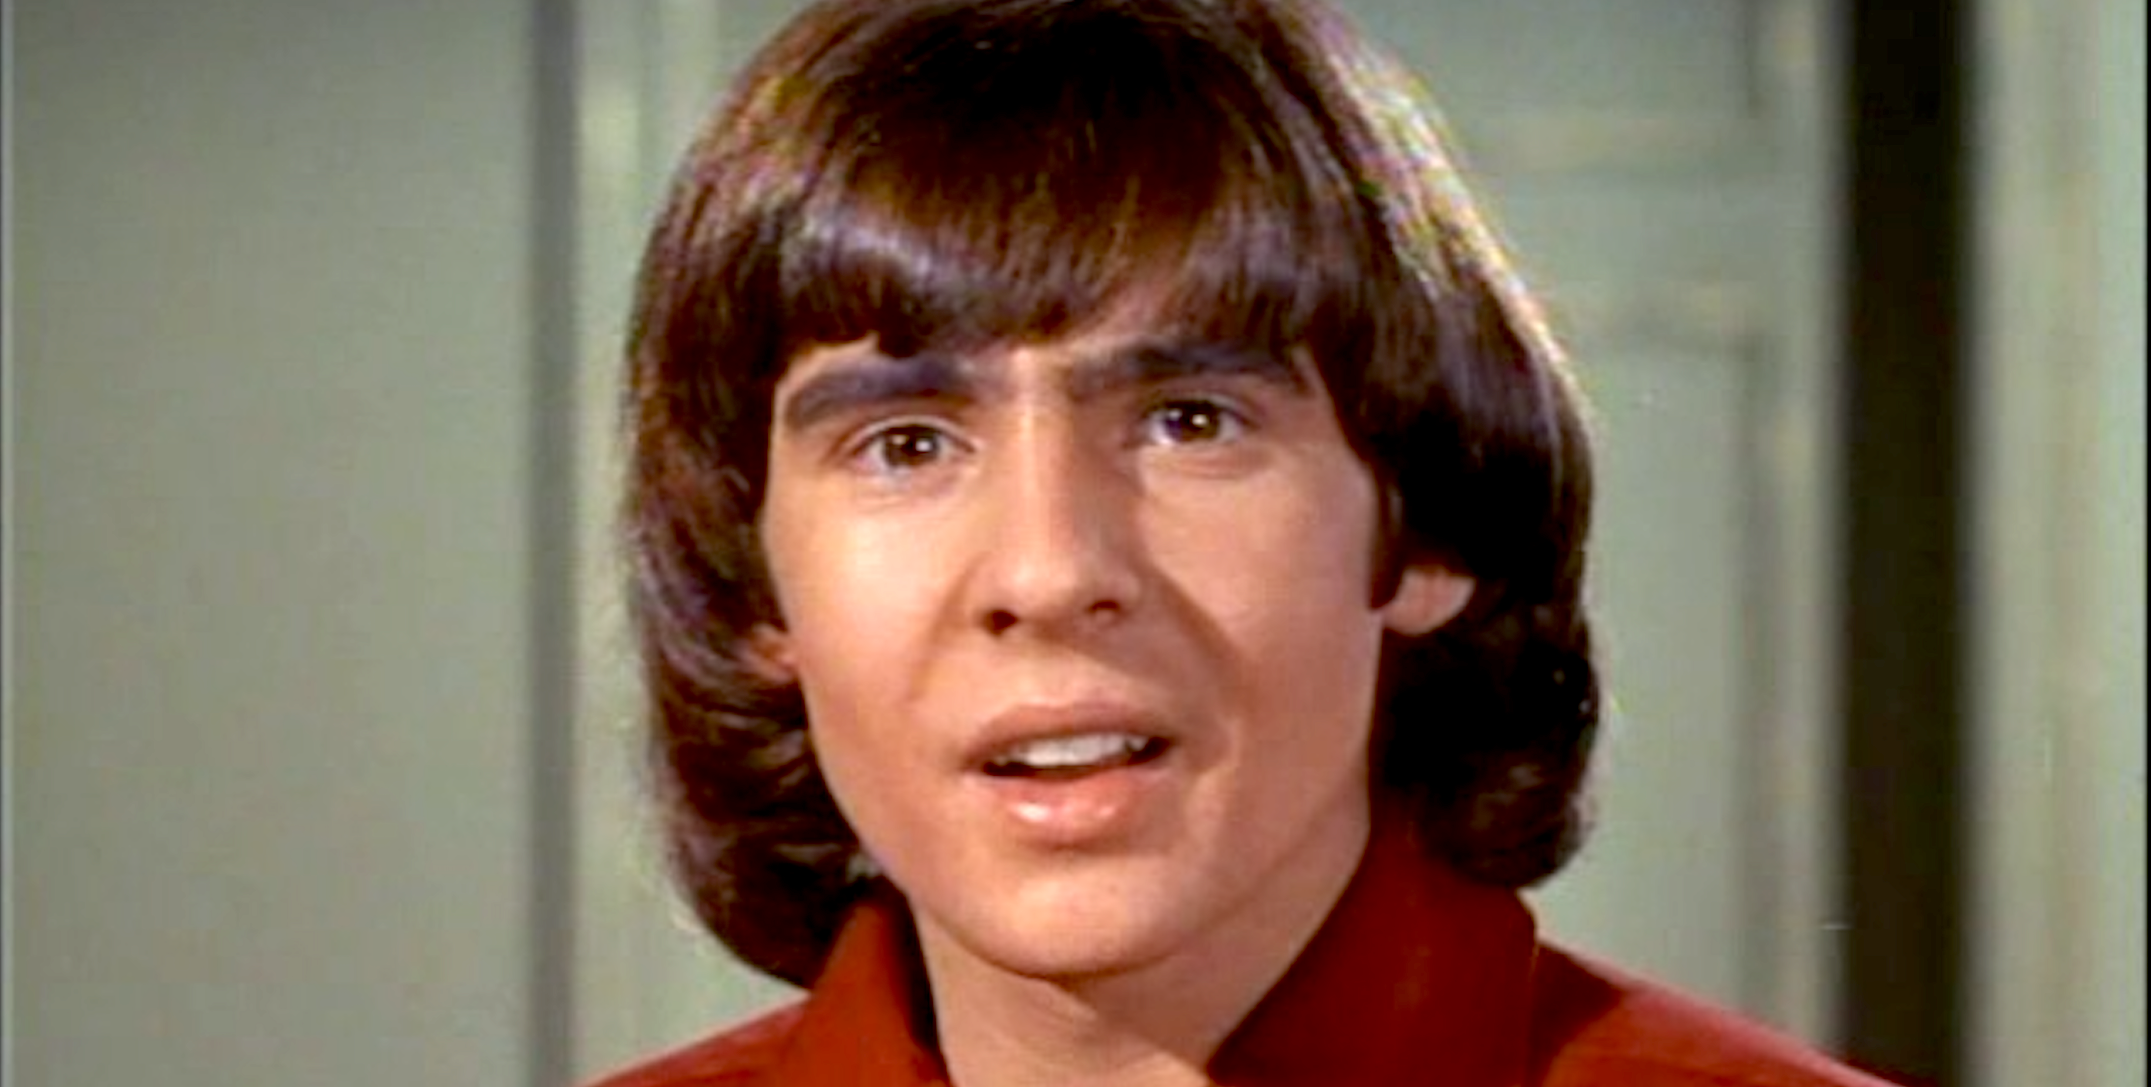 tv, Music, davy jones, the monkees, 60s, series